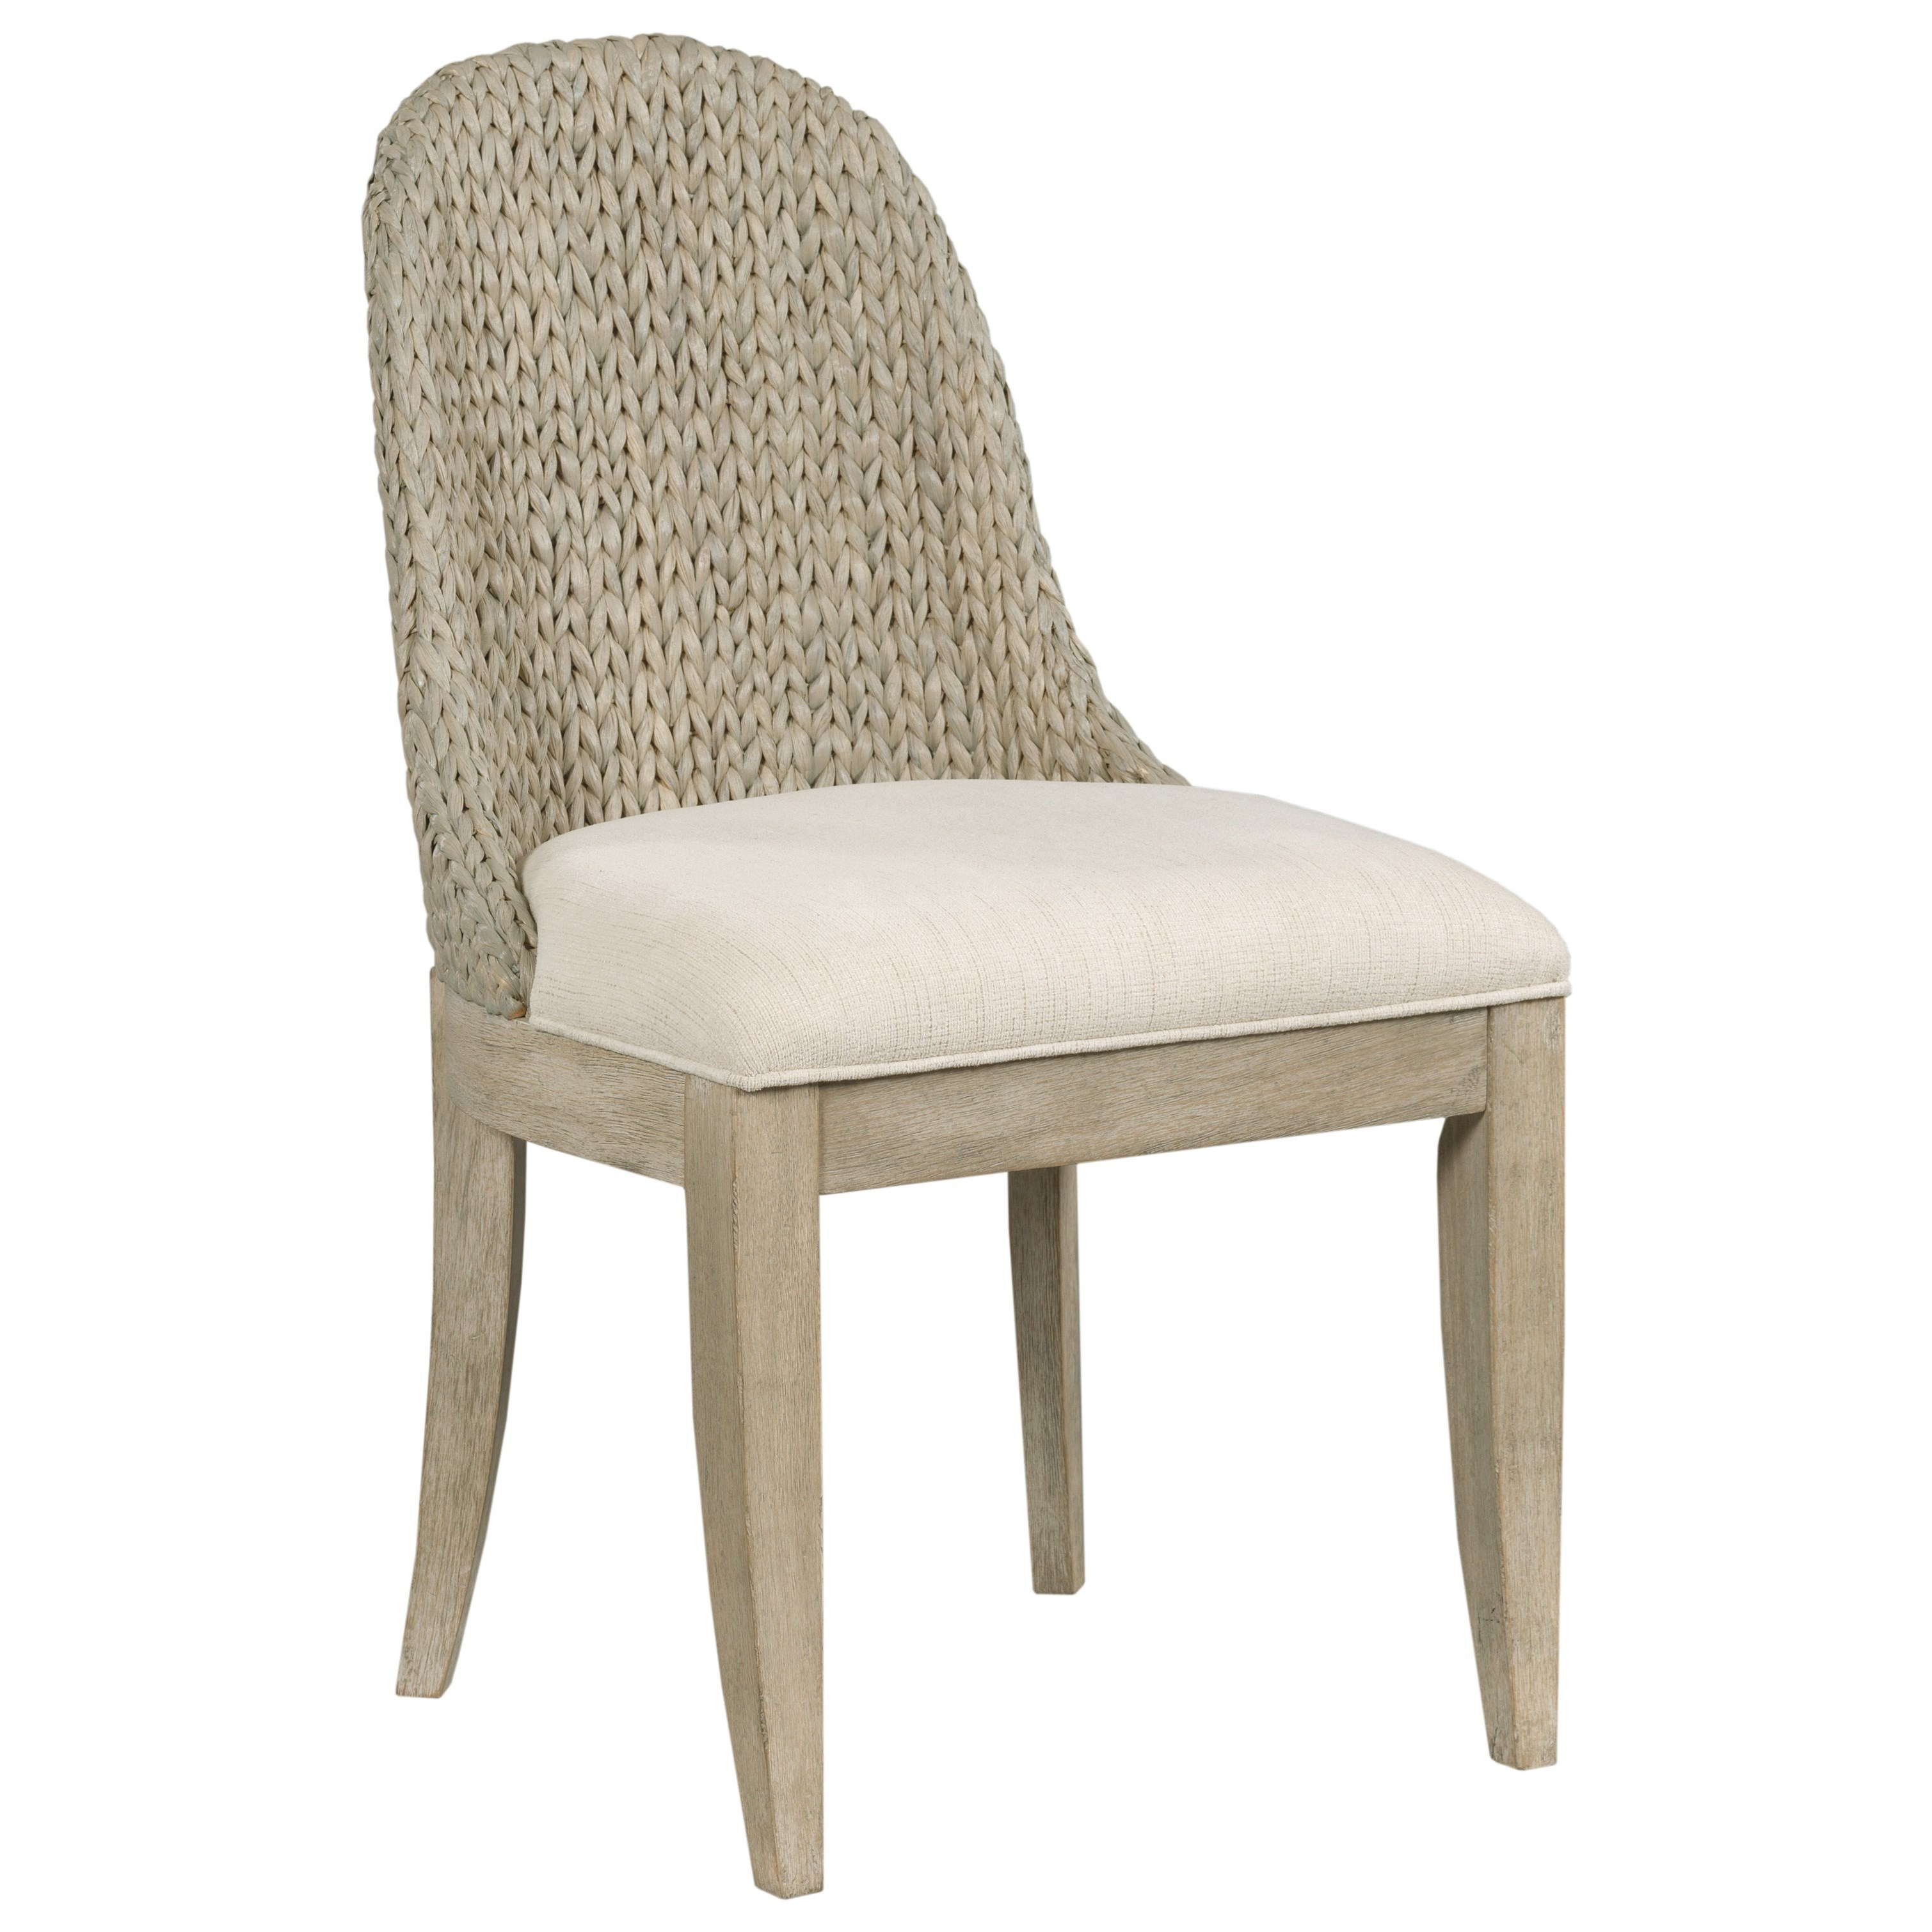 Vista Boca Woven Chair by American Drew at Stoney Creek Furniture